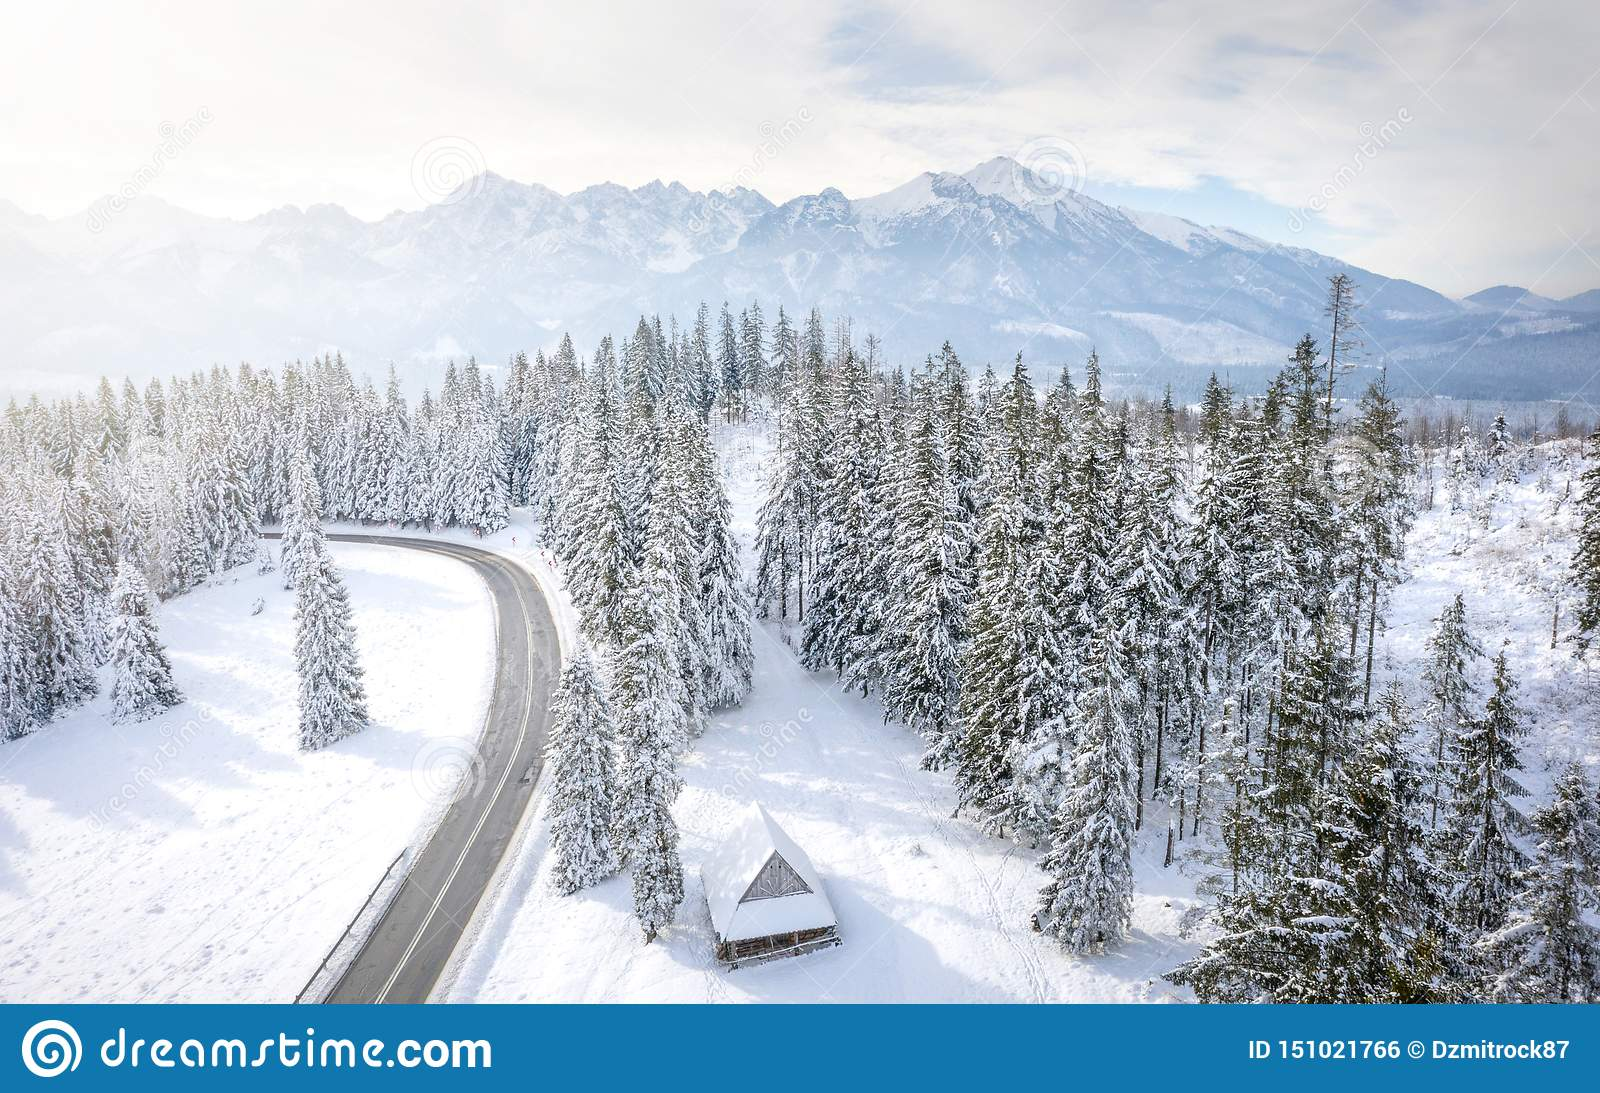 Snowy winter mountains landscape with frosty forest and road. Road to rocky mountain range. Wooden house in pine trees in mountain